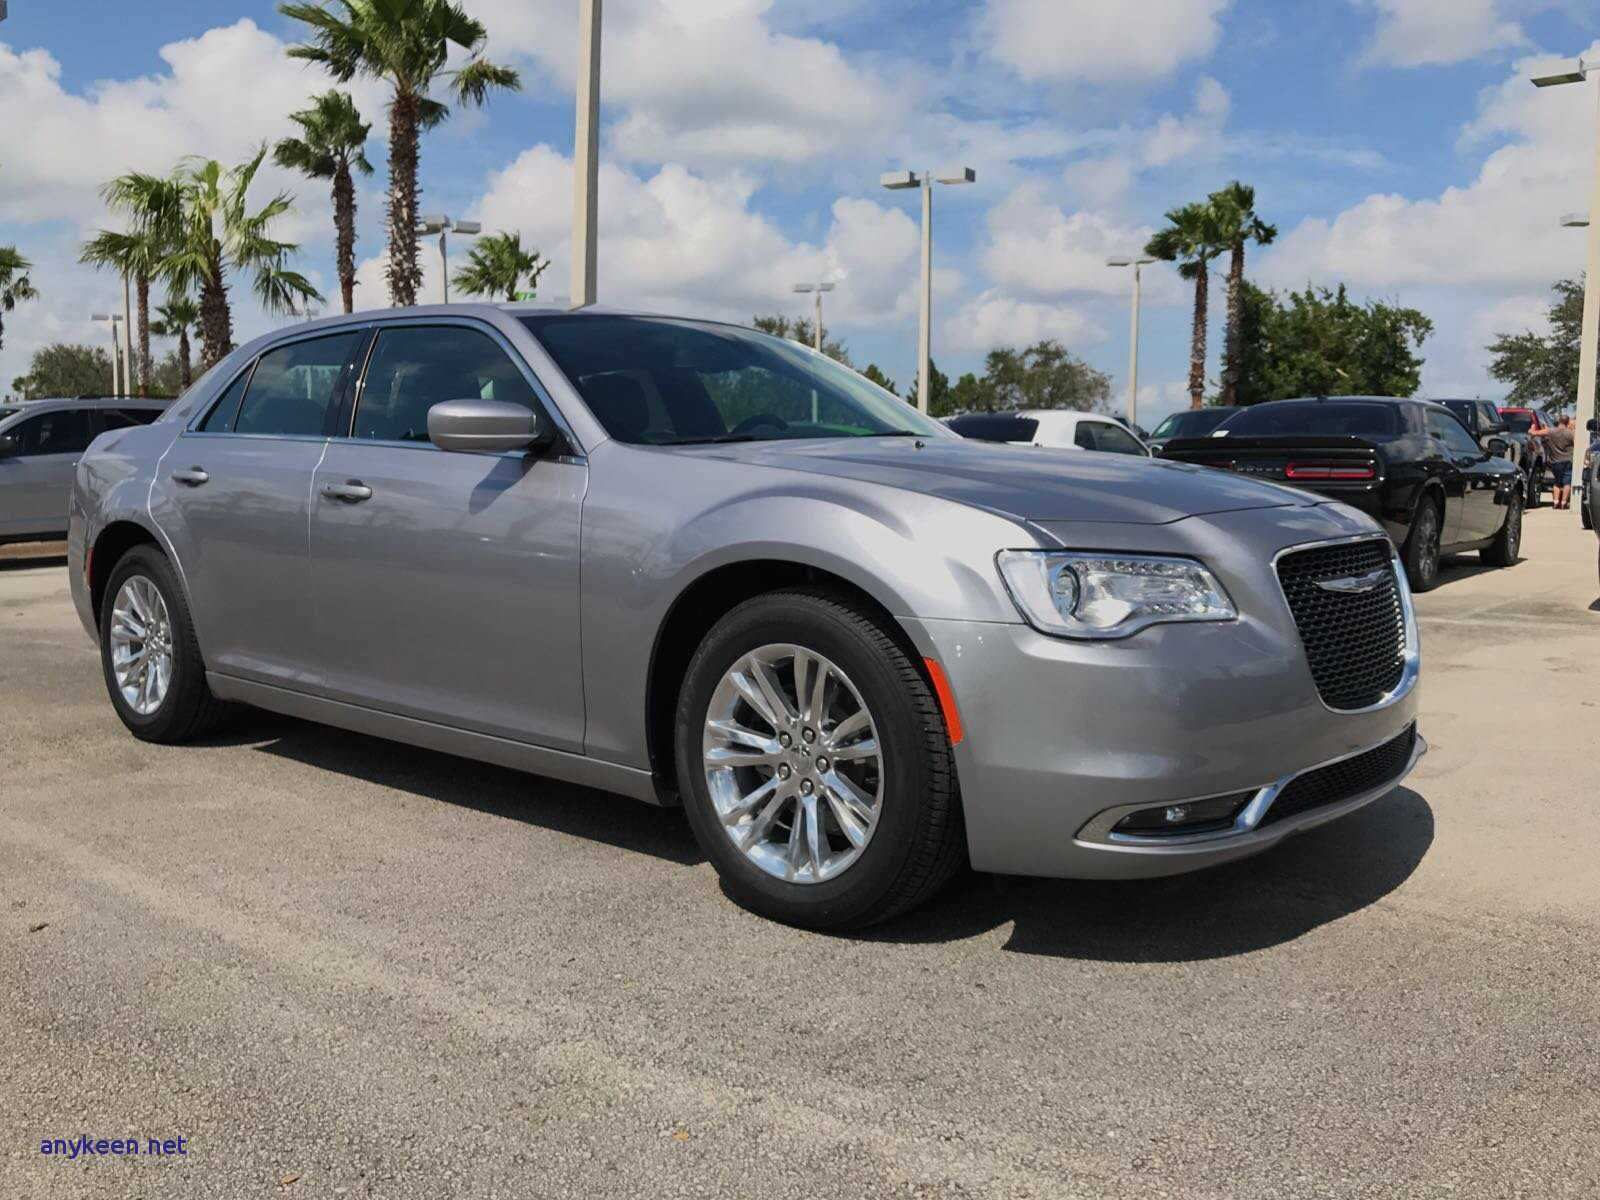 32 All New 2019 Chrysler 100 Sedan Configurations